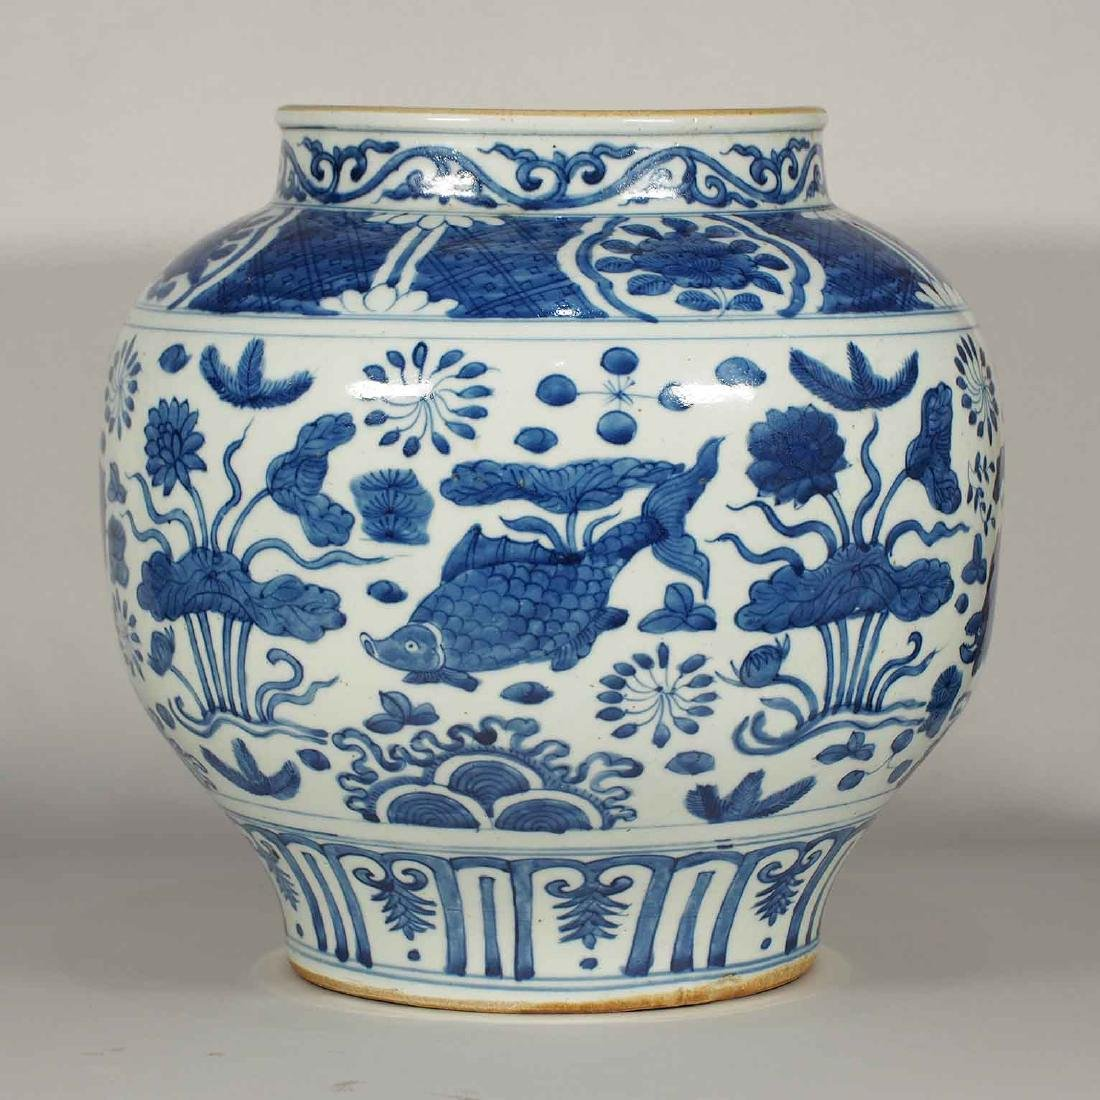 Jar with Fishes in a Pond Design, Wanli, Ming Dynasty - 3